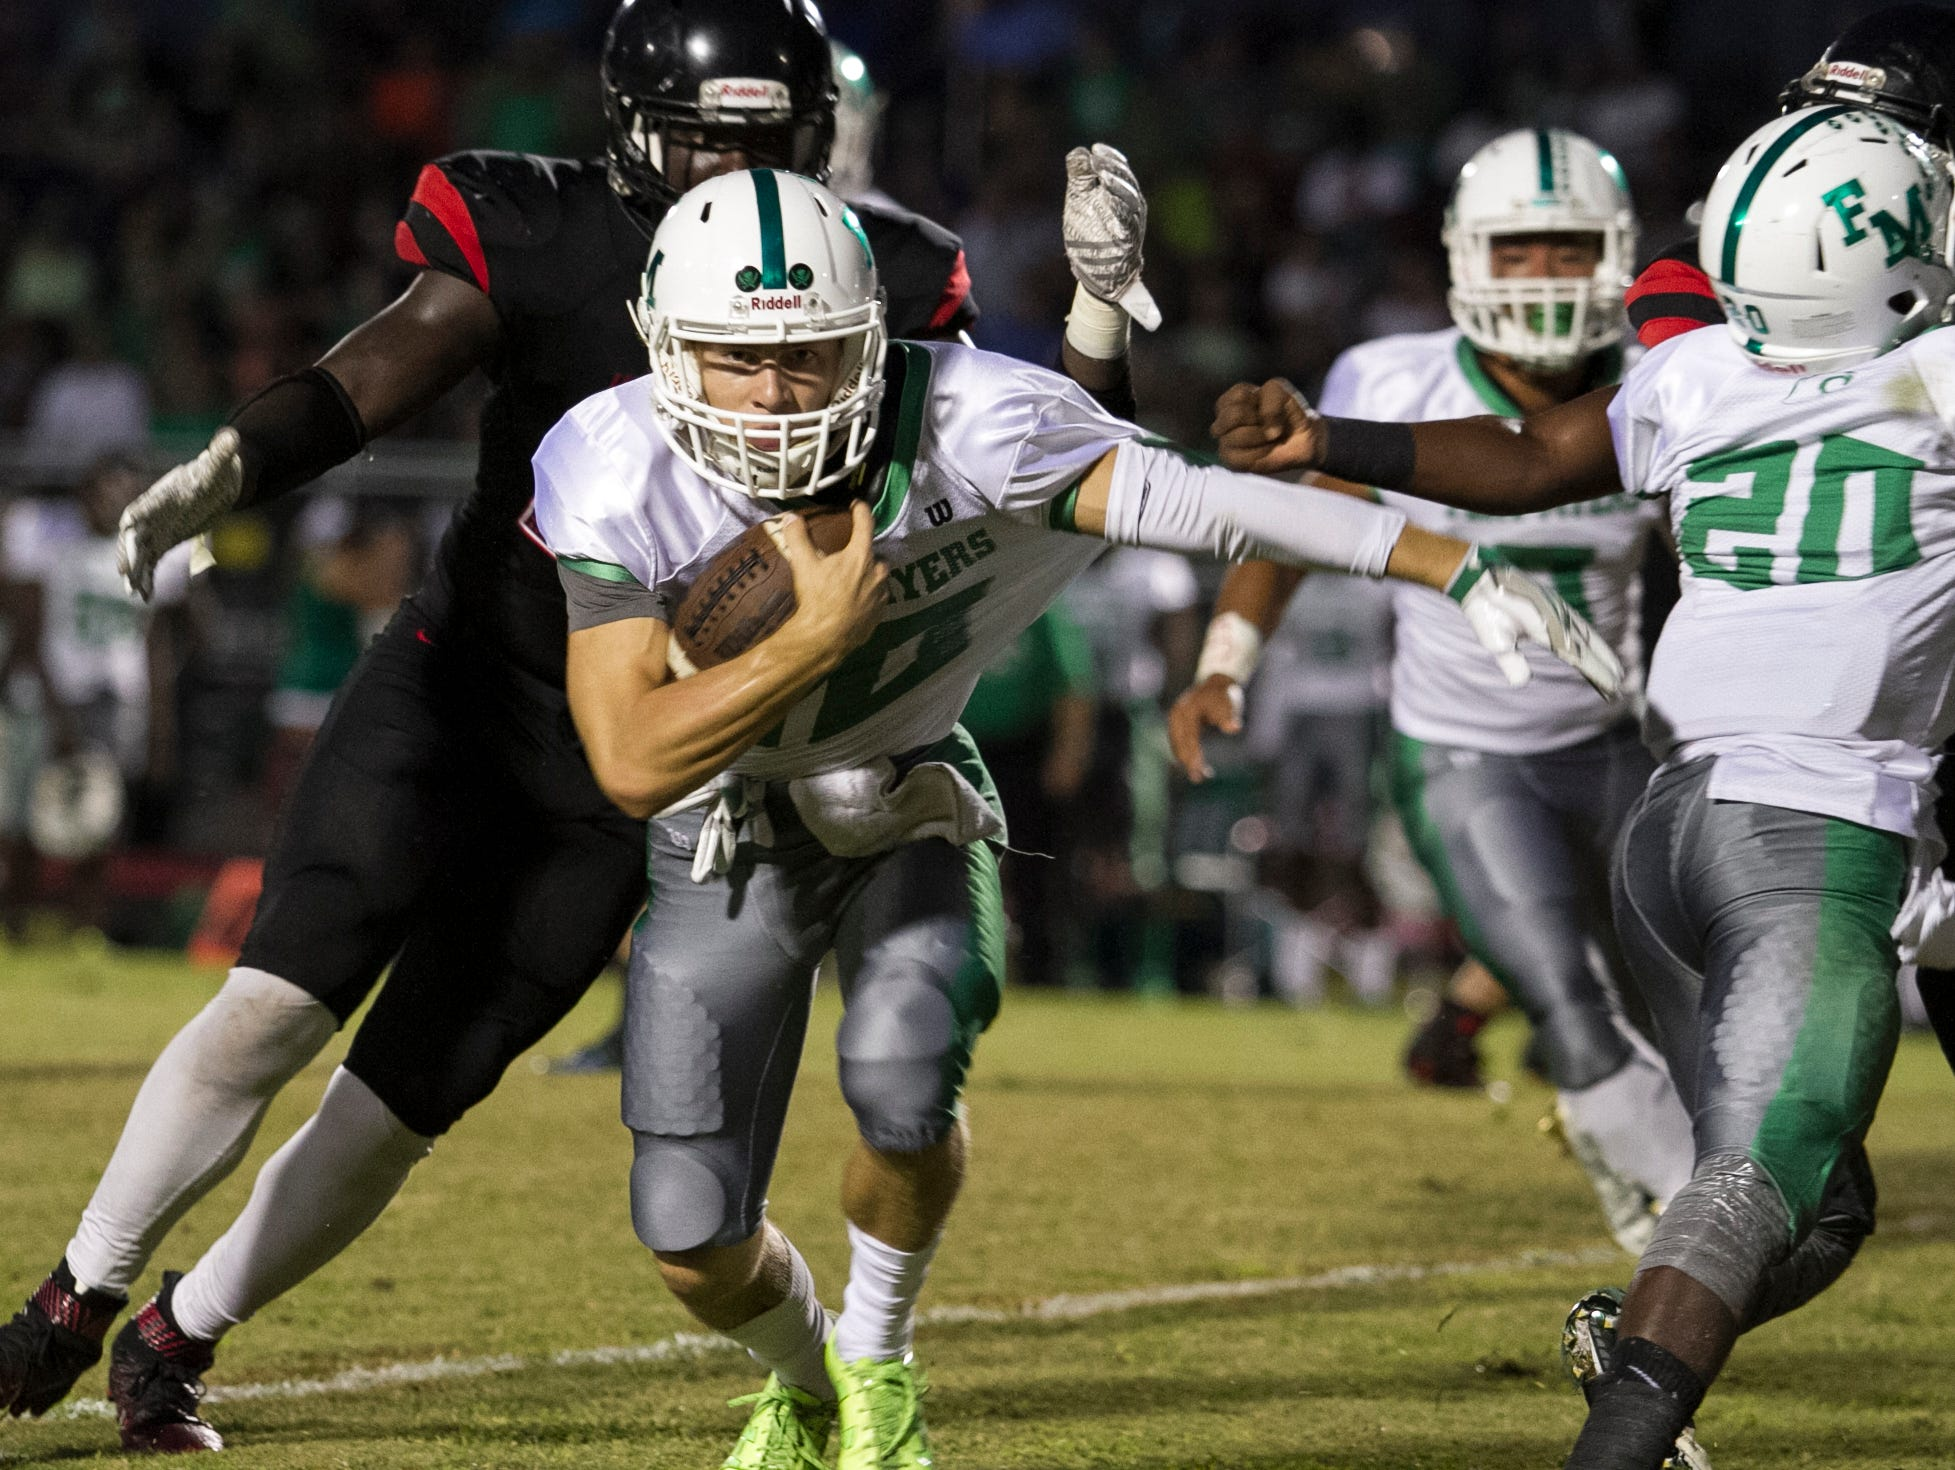 Fort Myers High School's Benjamin Stobough gets pulled down by a Wolfpack defender during a first half positive yardage run Friday avening.